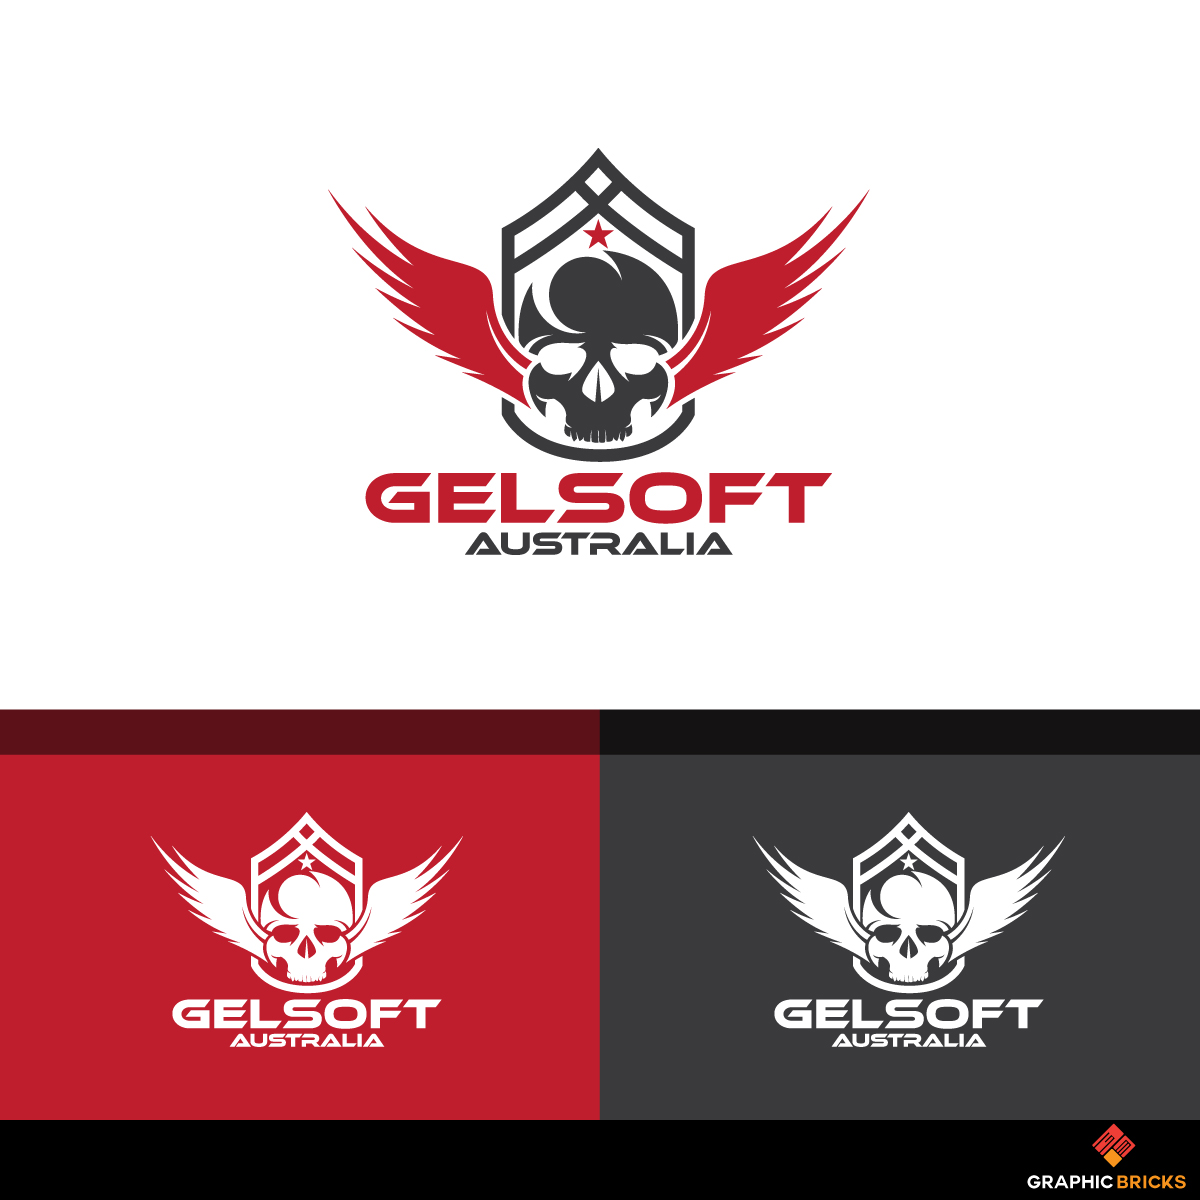 Masculine, Upmarket, Games Logo Design for Gelsoft Australia